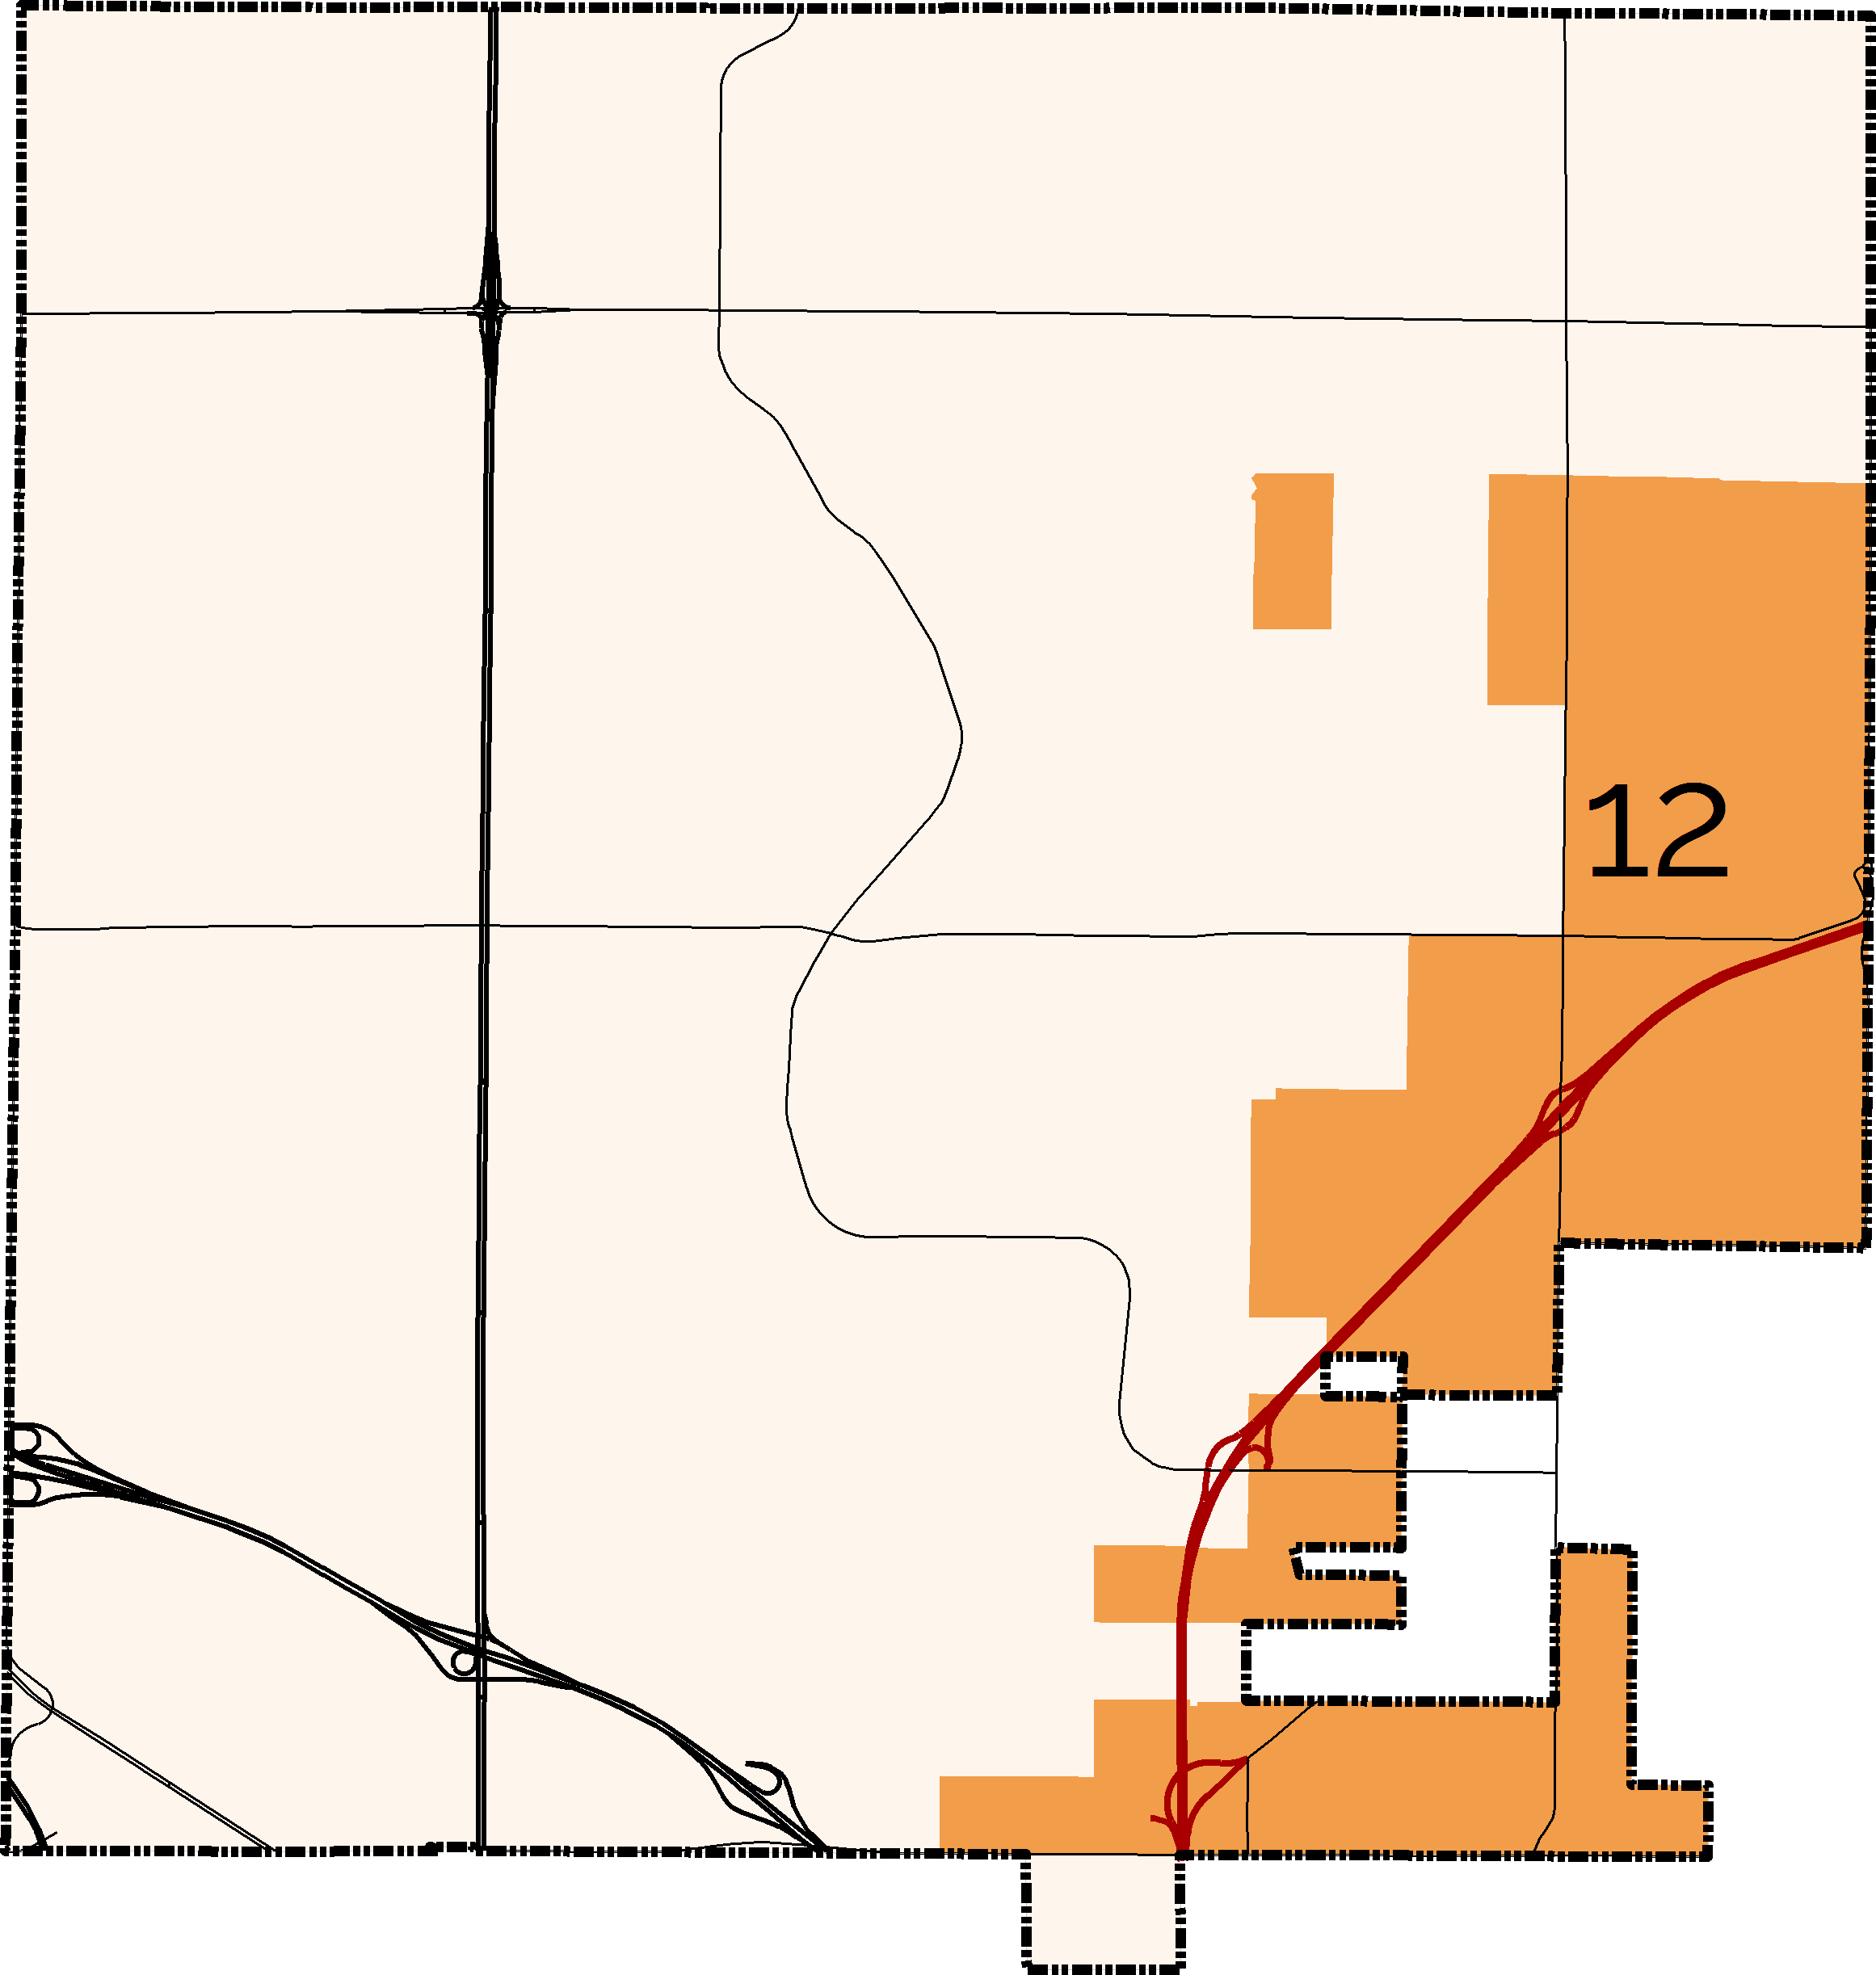 District 12 Boundary Map